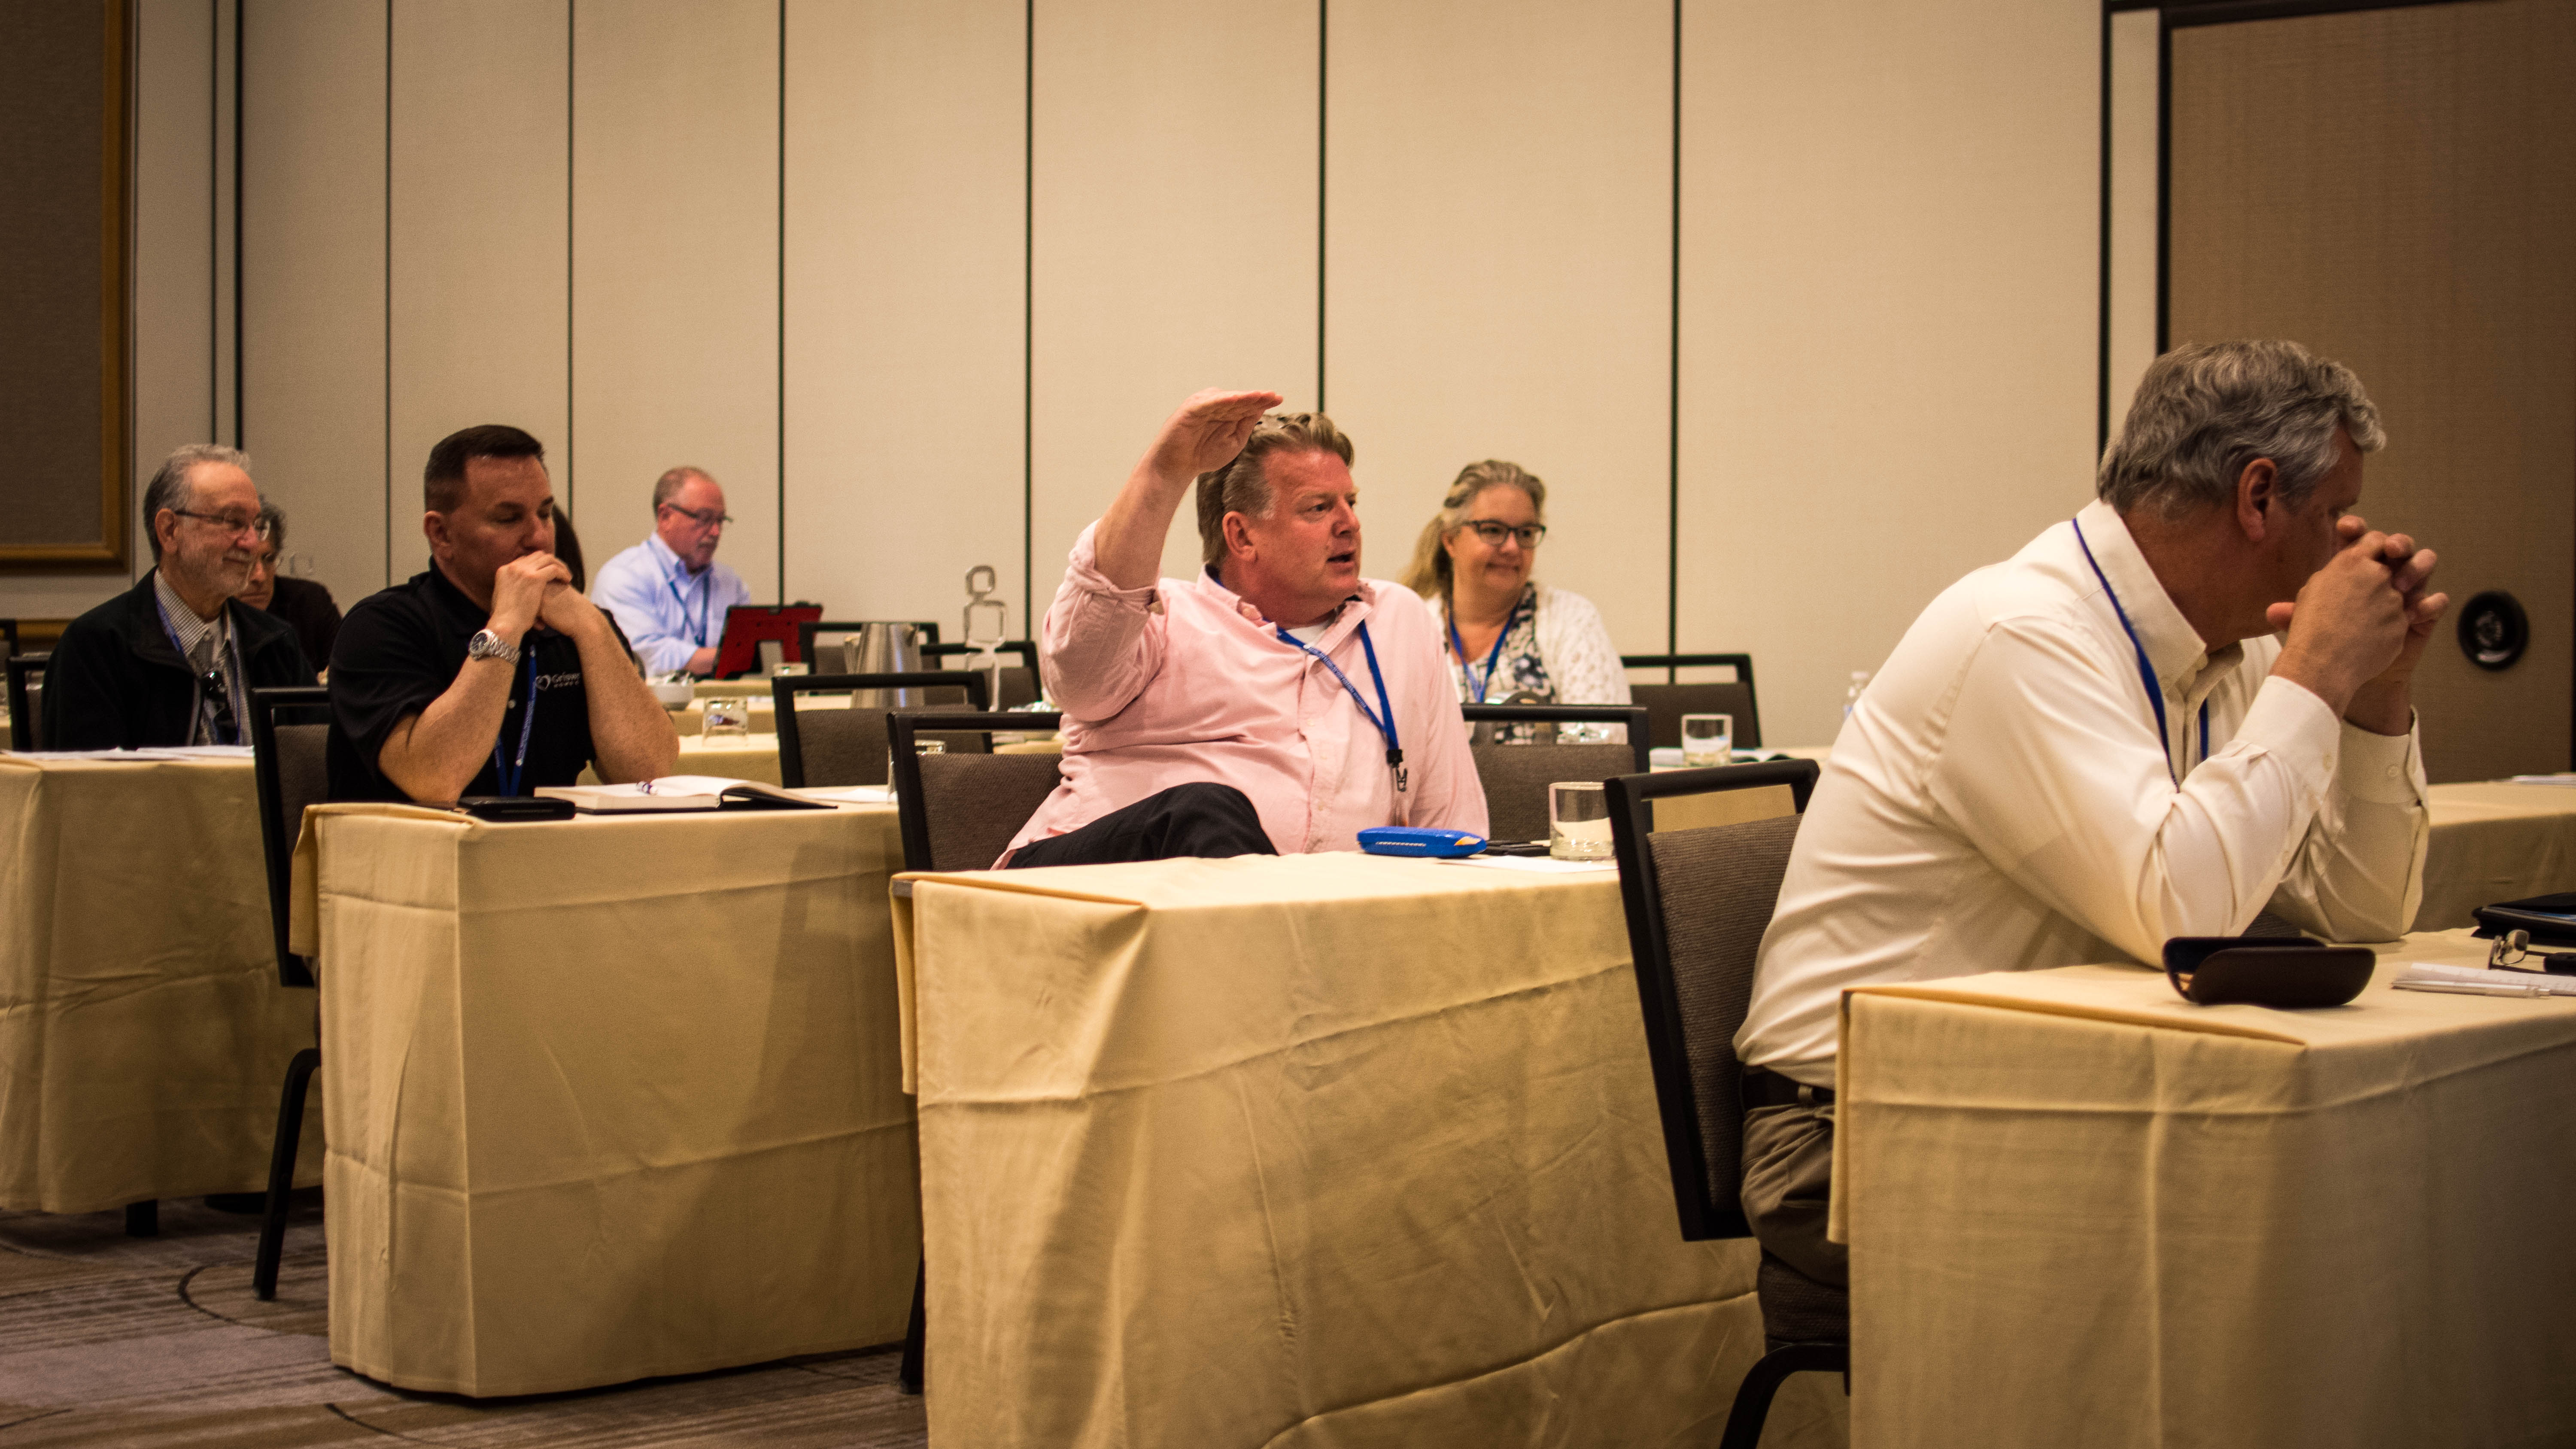 A photo shows Brian Schnell raising his hand vehemently while speaking to other franchisee attorneys during a meeting.